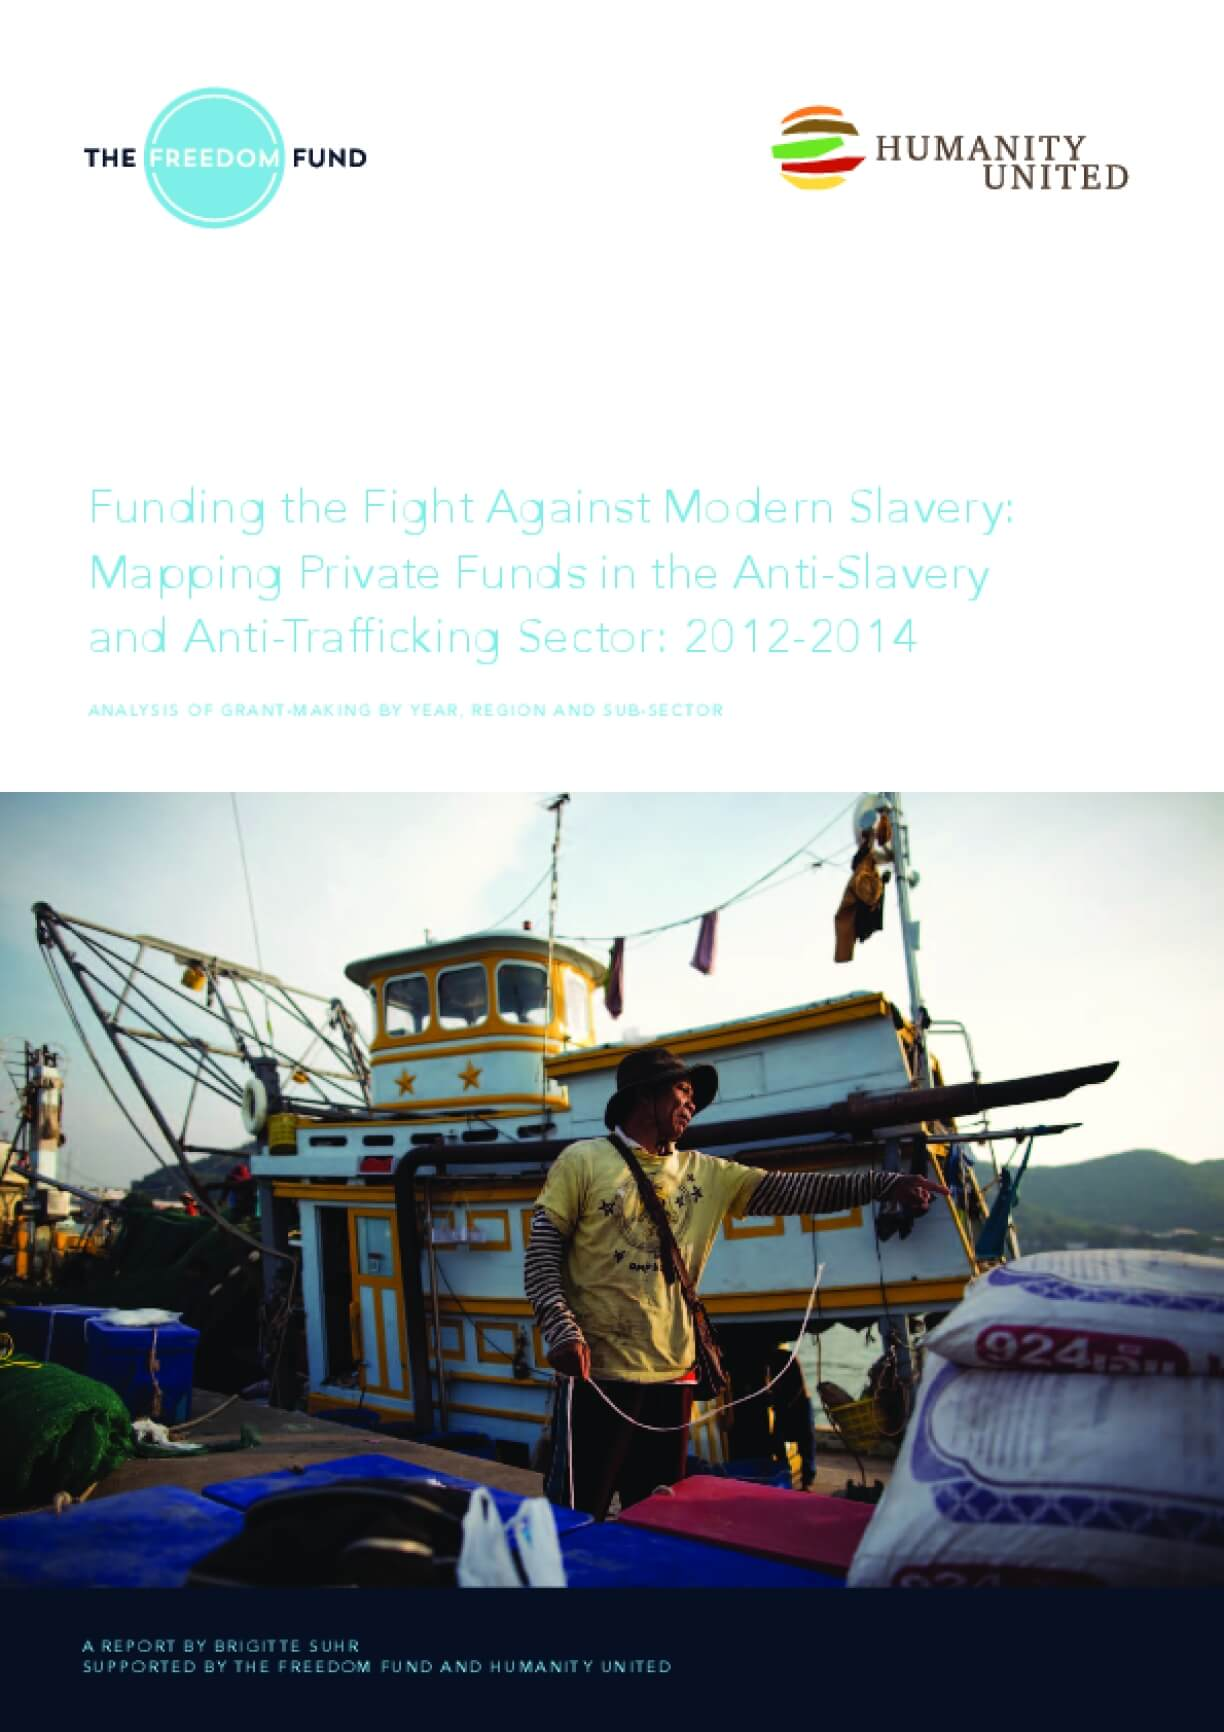 Funding the Fight Against Modern Slavery: Mapping Private Funds in the Anti-Slavery and Anti-Trafficking Sector: 2012-2014